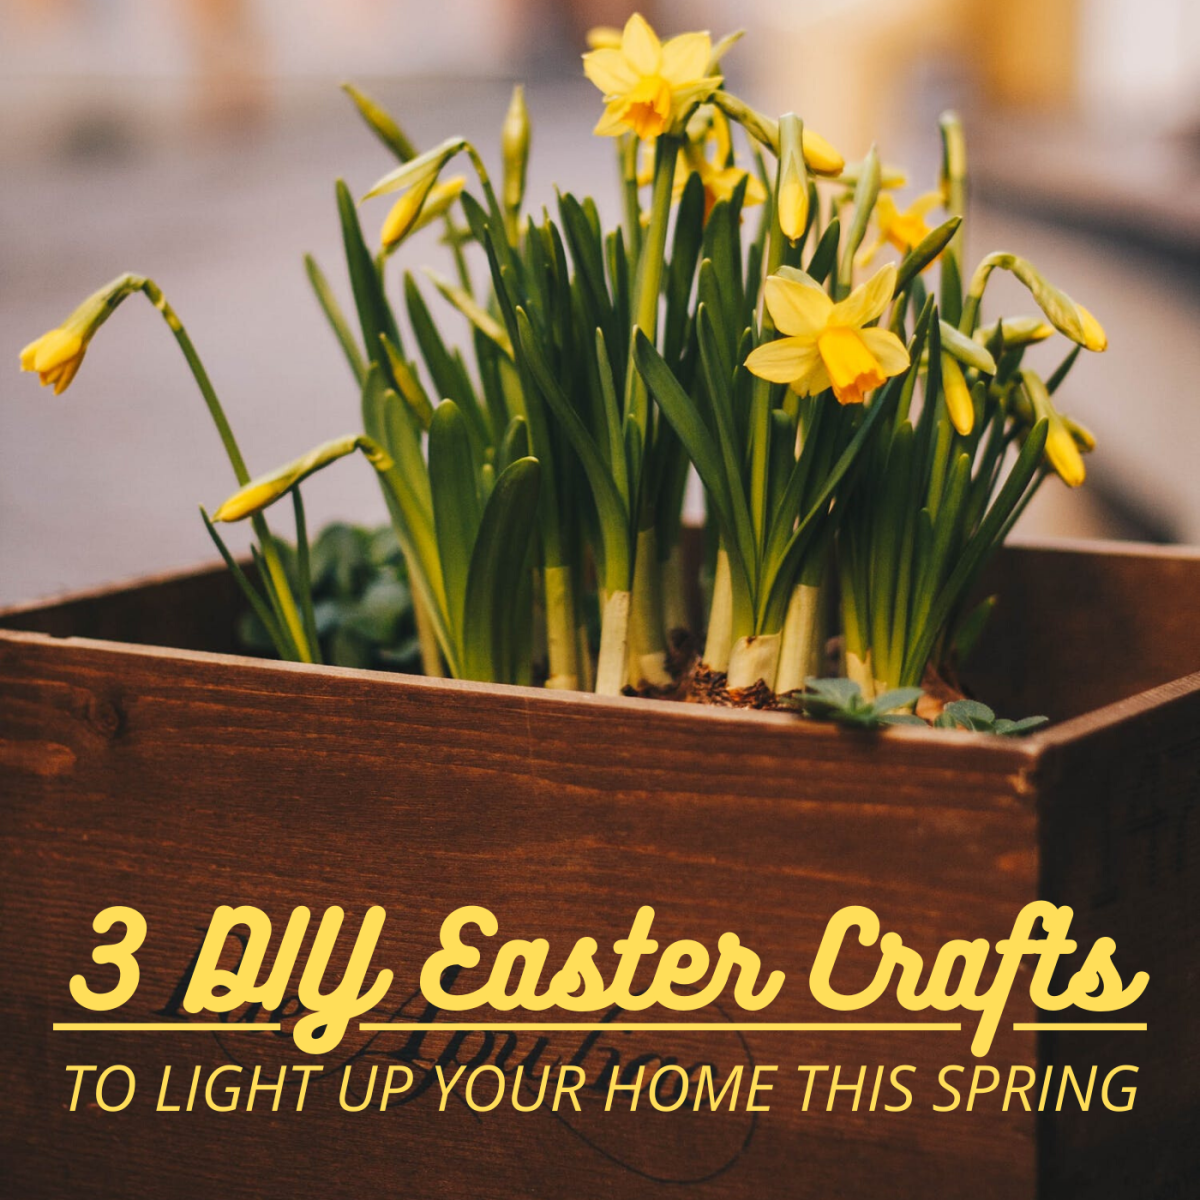 Spruce up your home this spring with these three quick and easy DIY easter crafts.